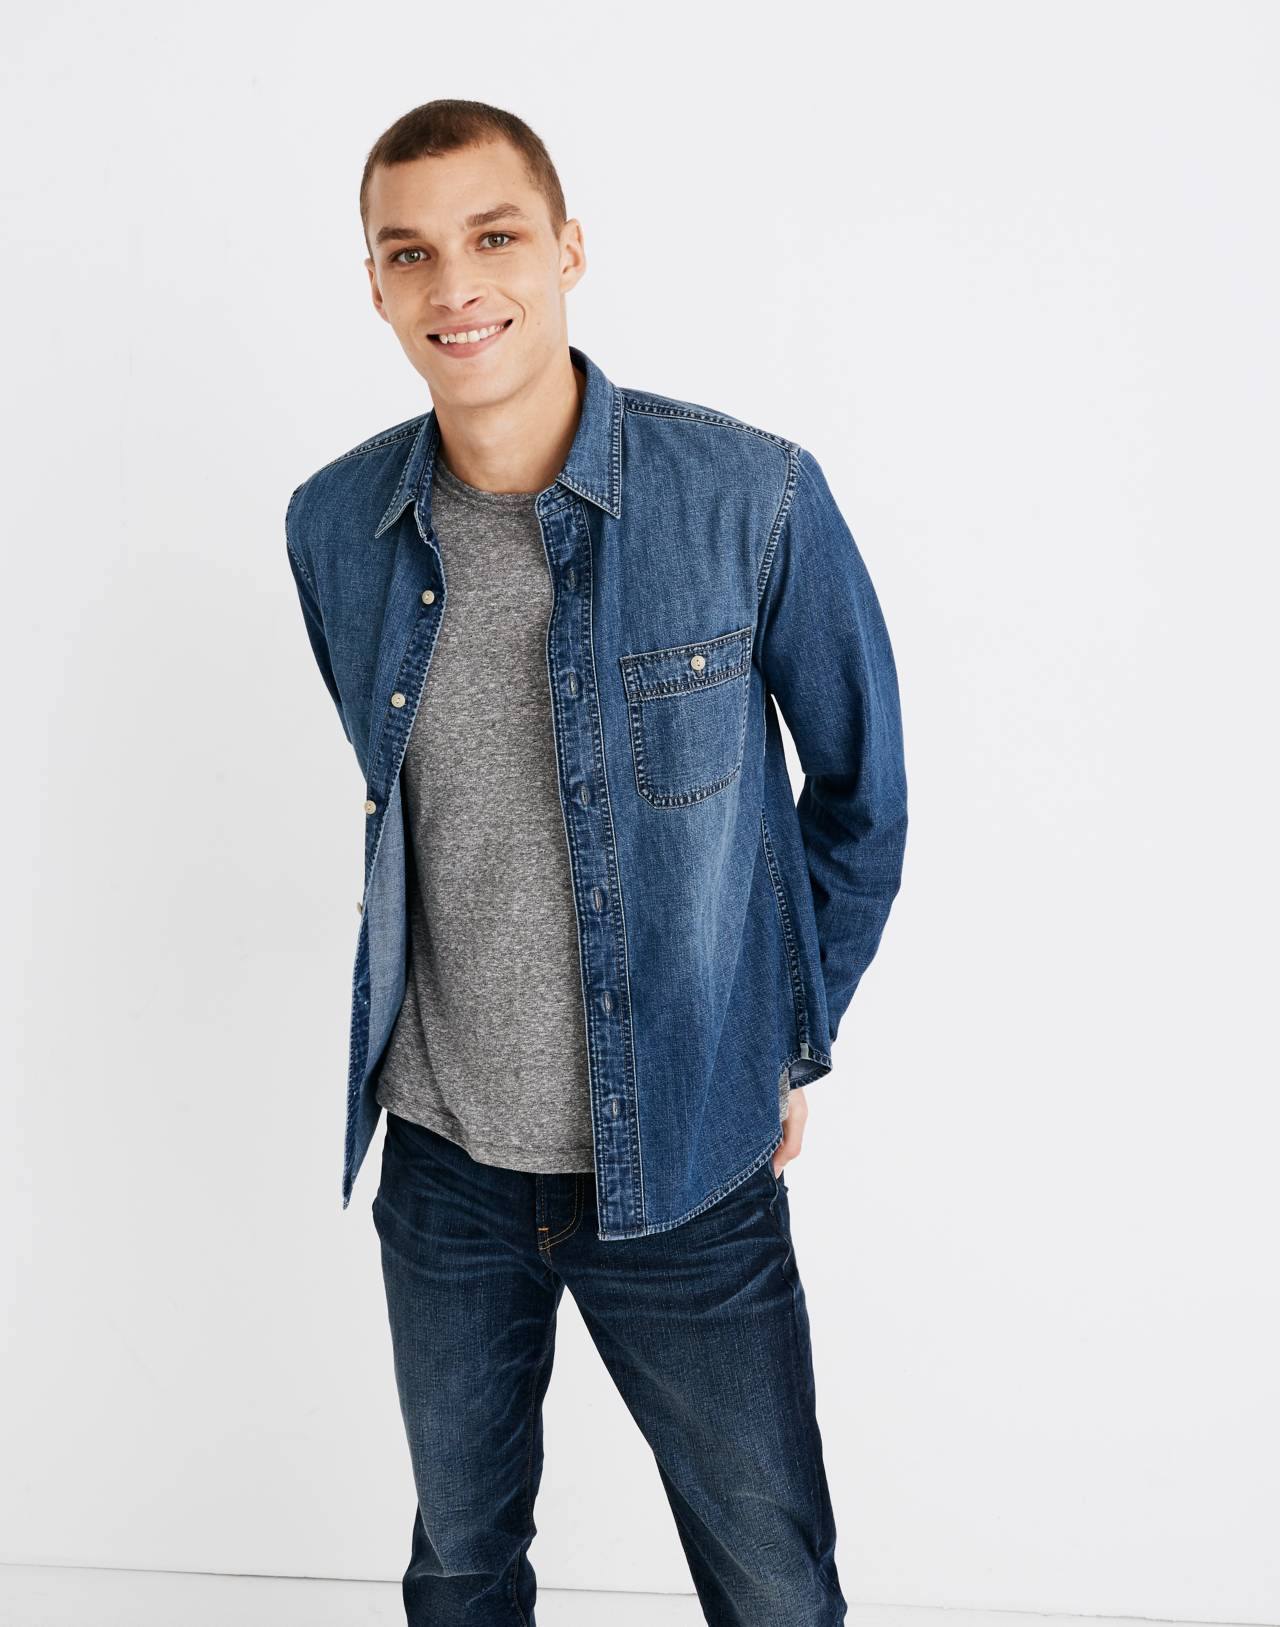 Denim Button-Down Shirt in Newhall Wash in newhall wash image 1